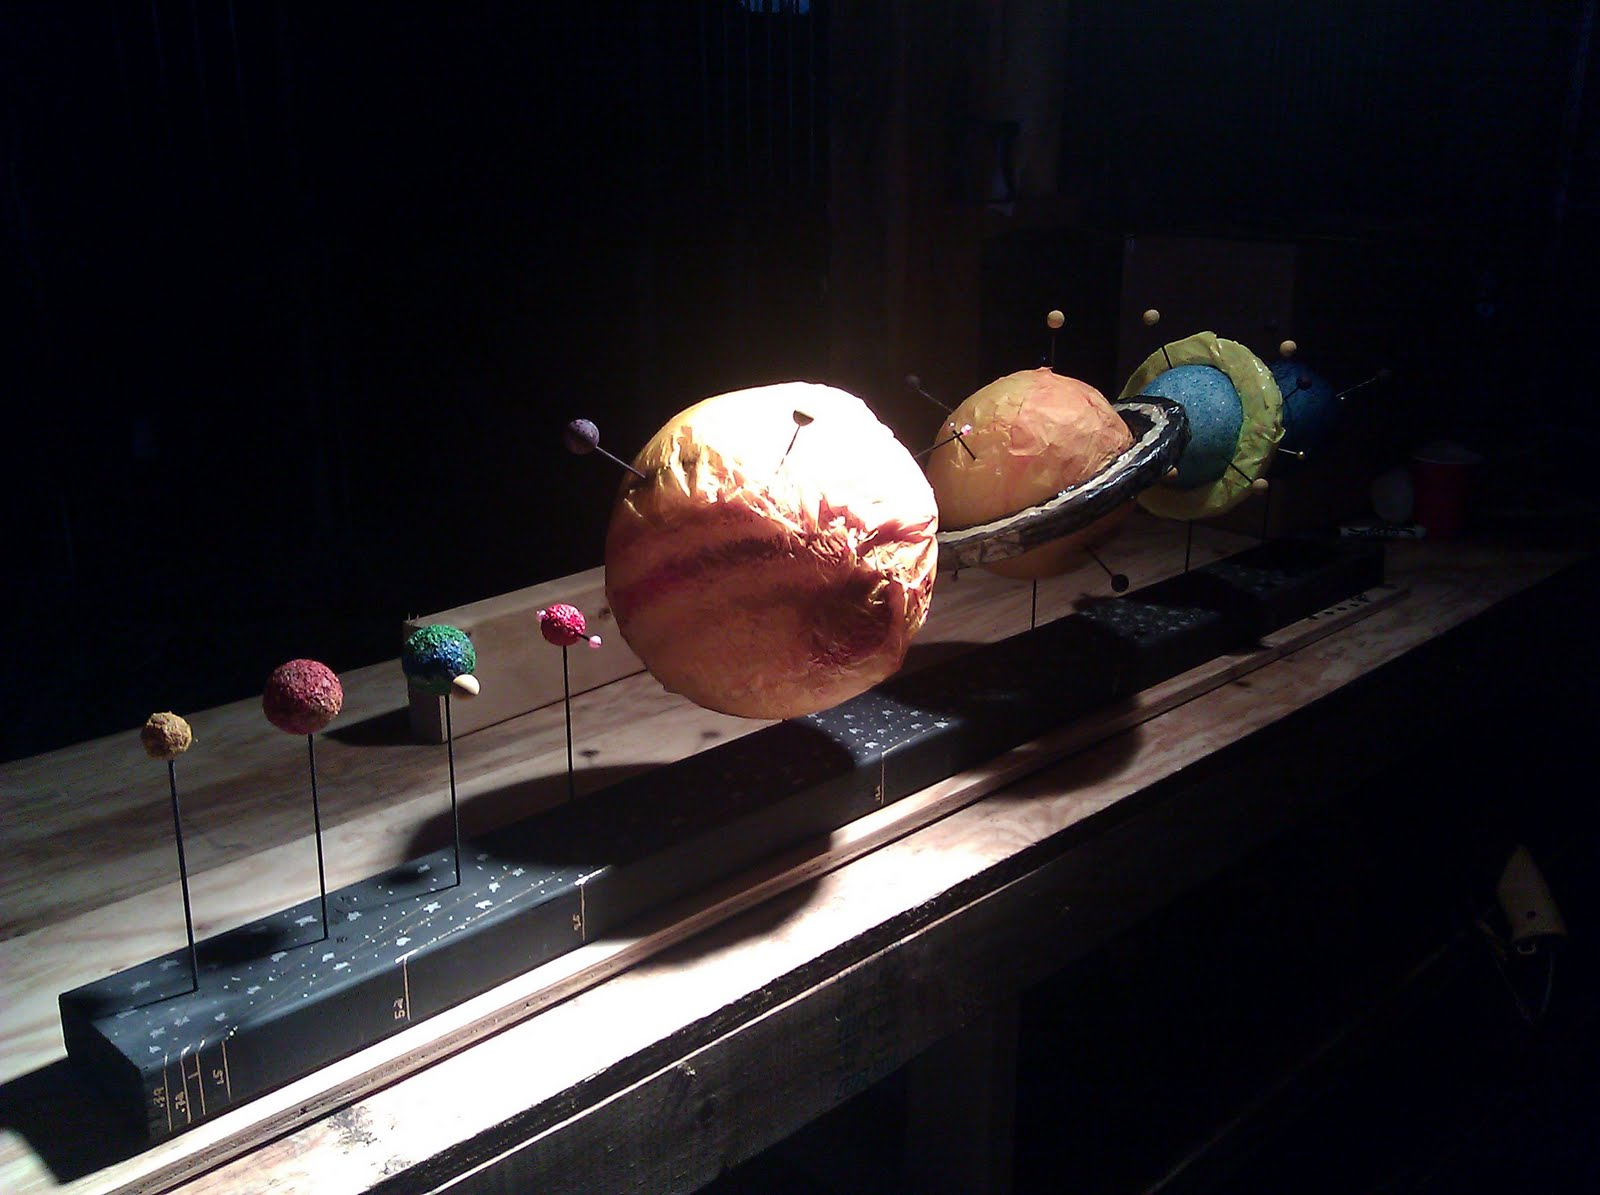 3d solar system model school project - photo #20